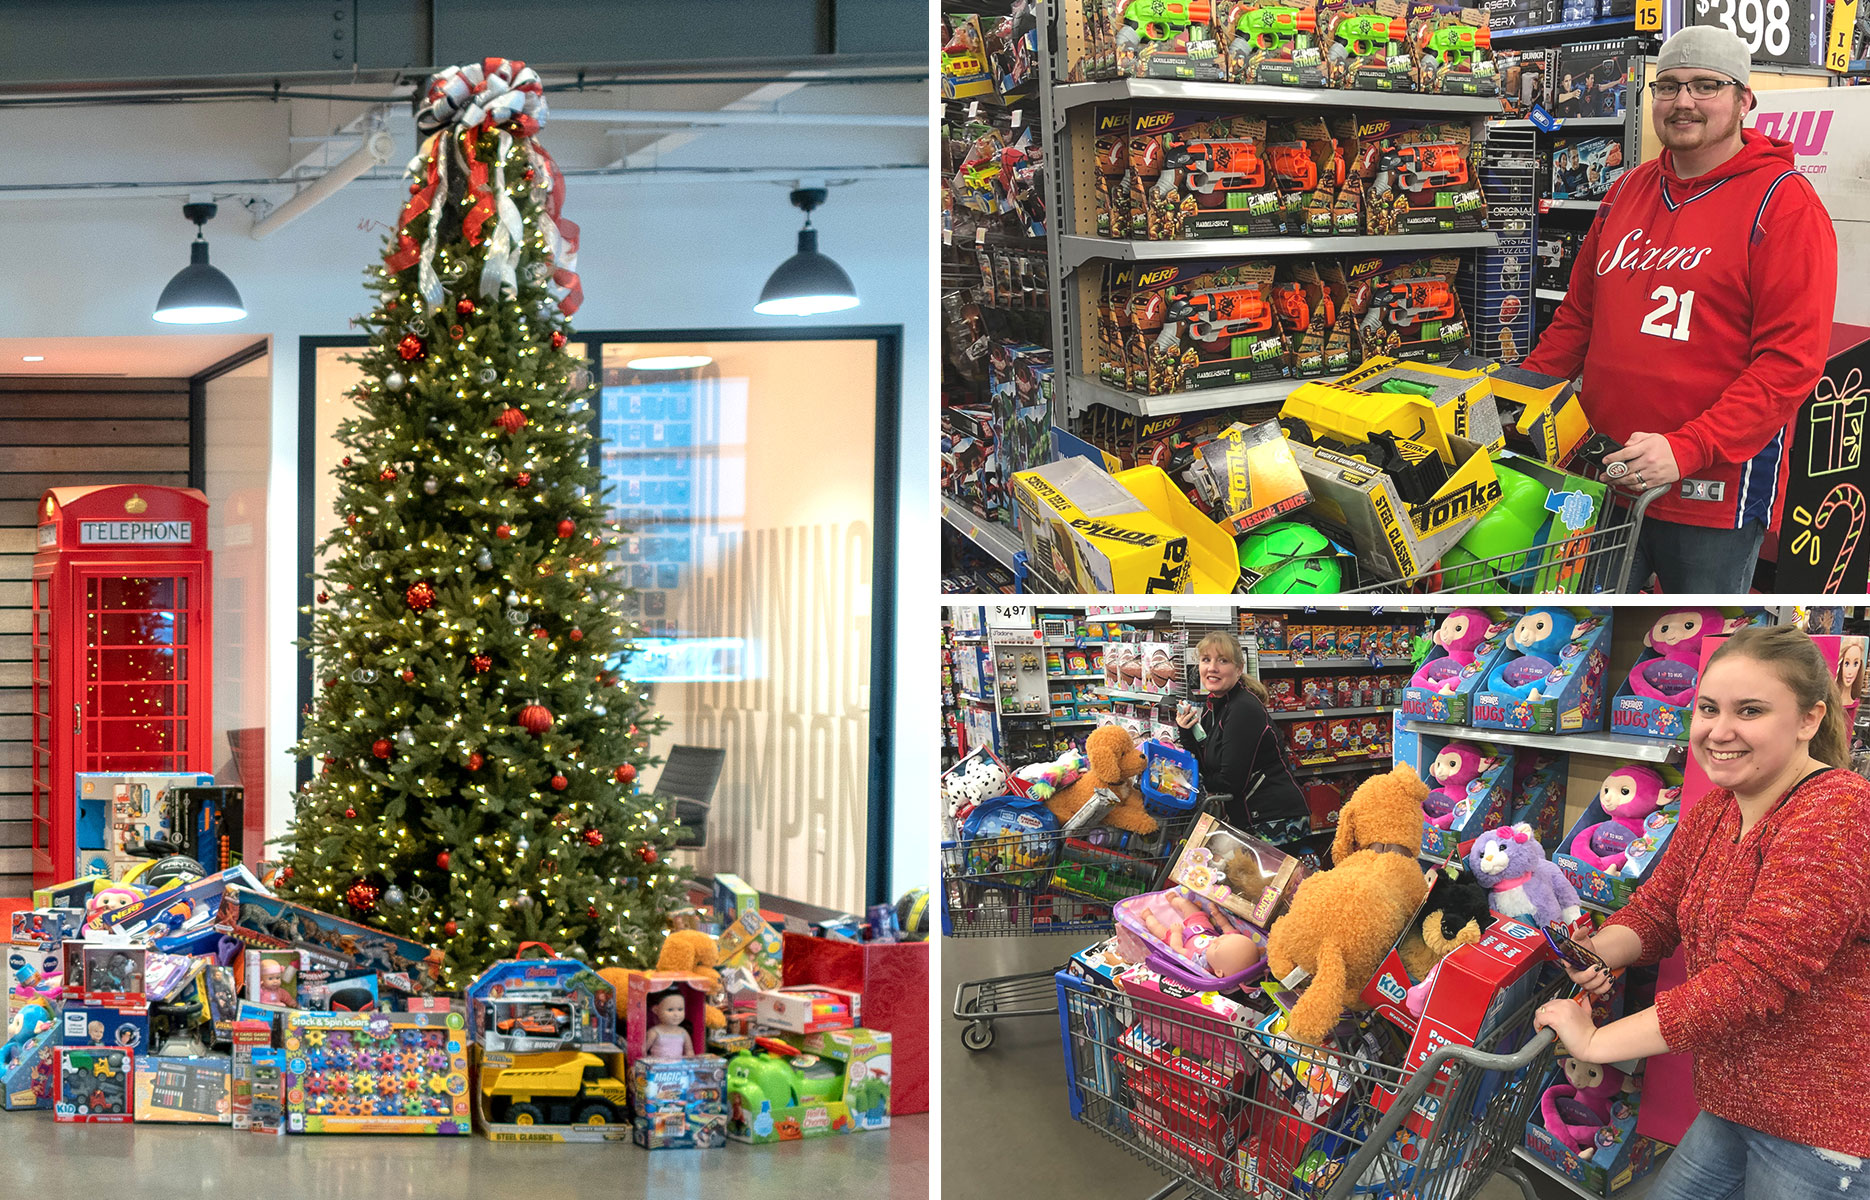 WWS Ninth Annual Toy Drive Biggest Yet